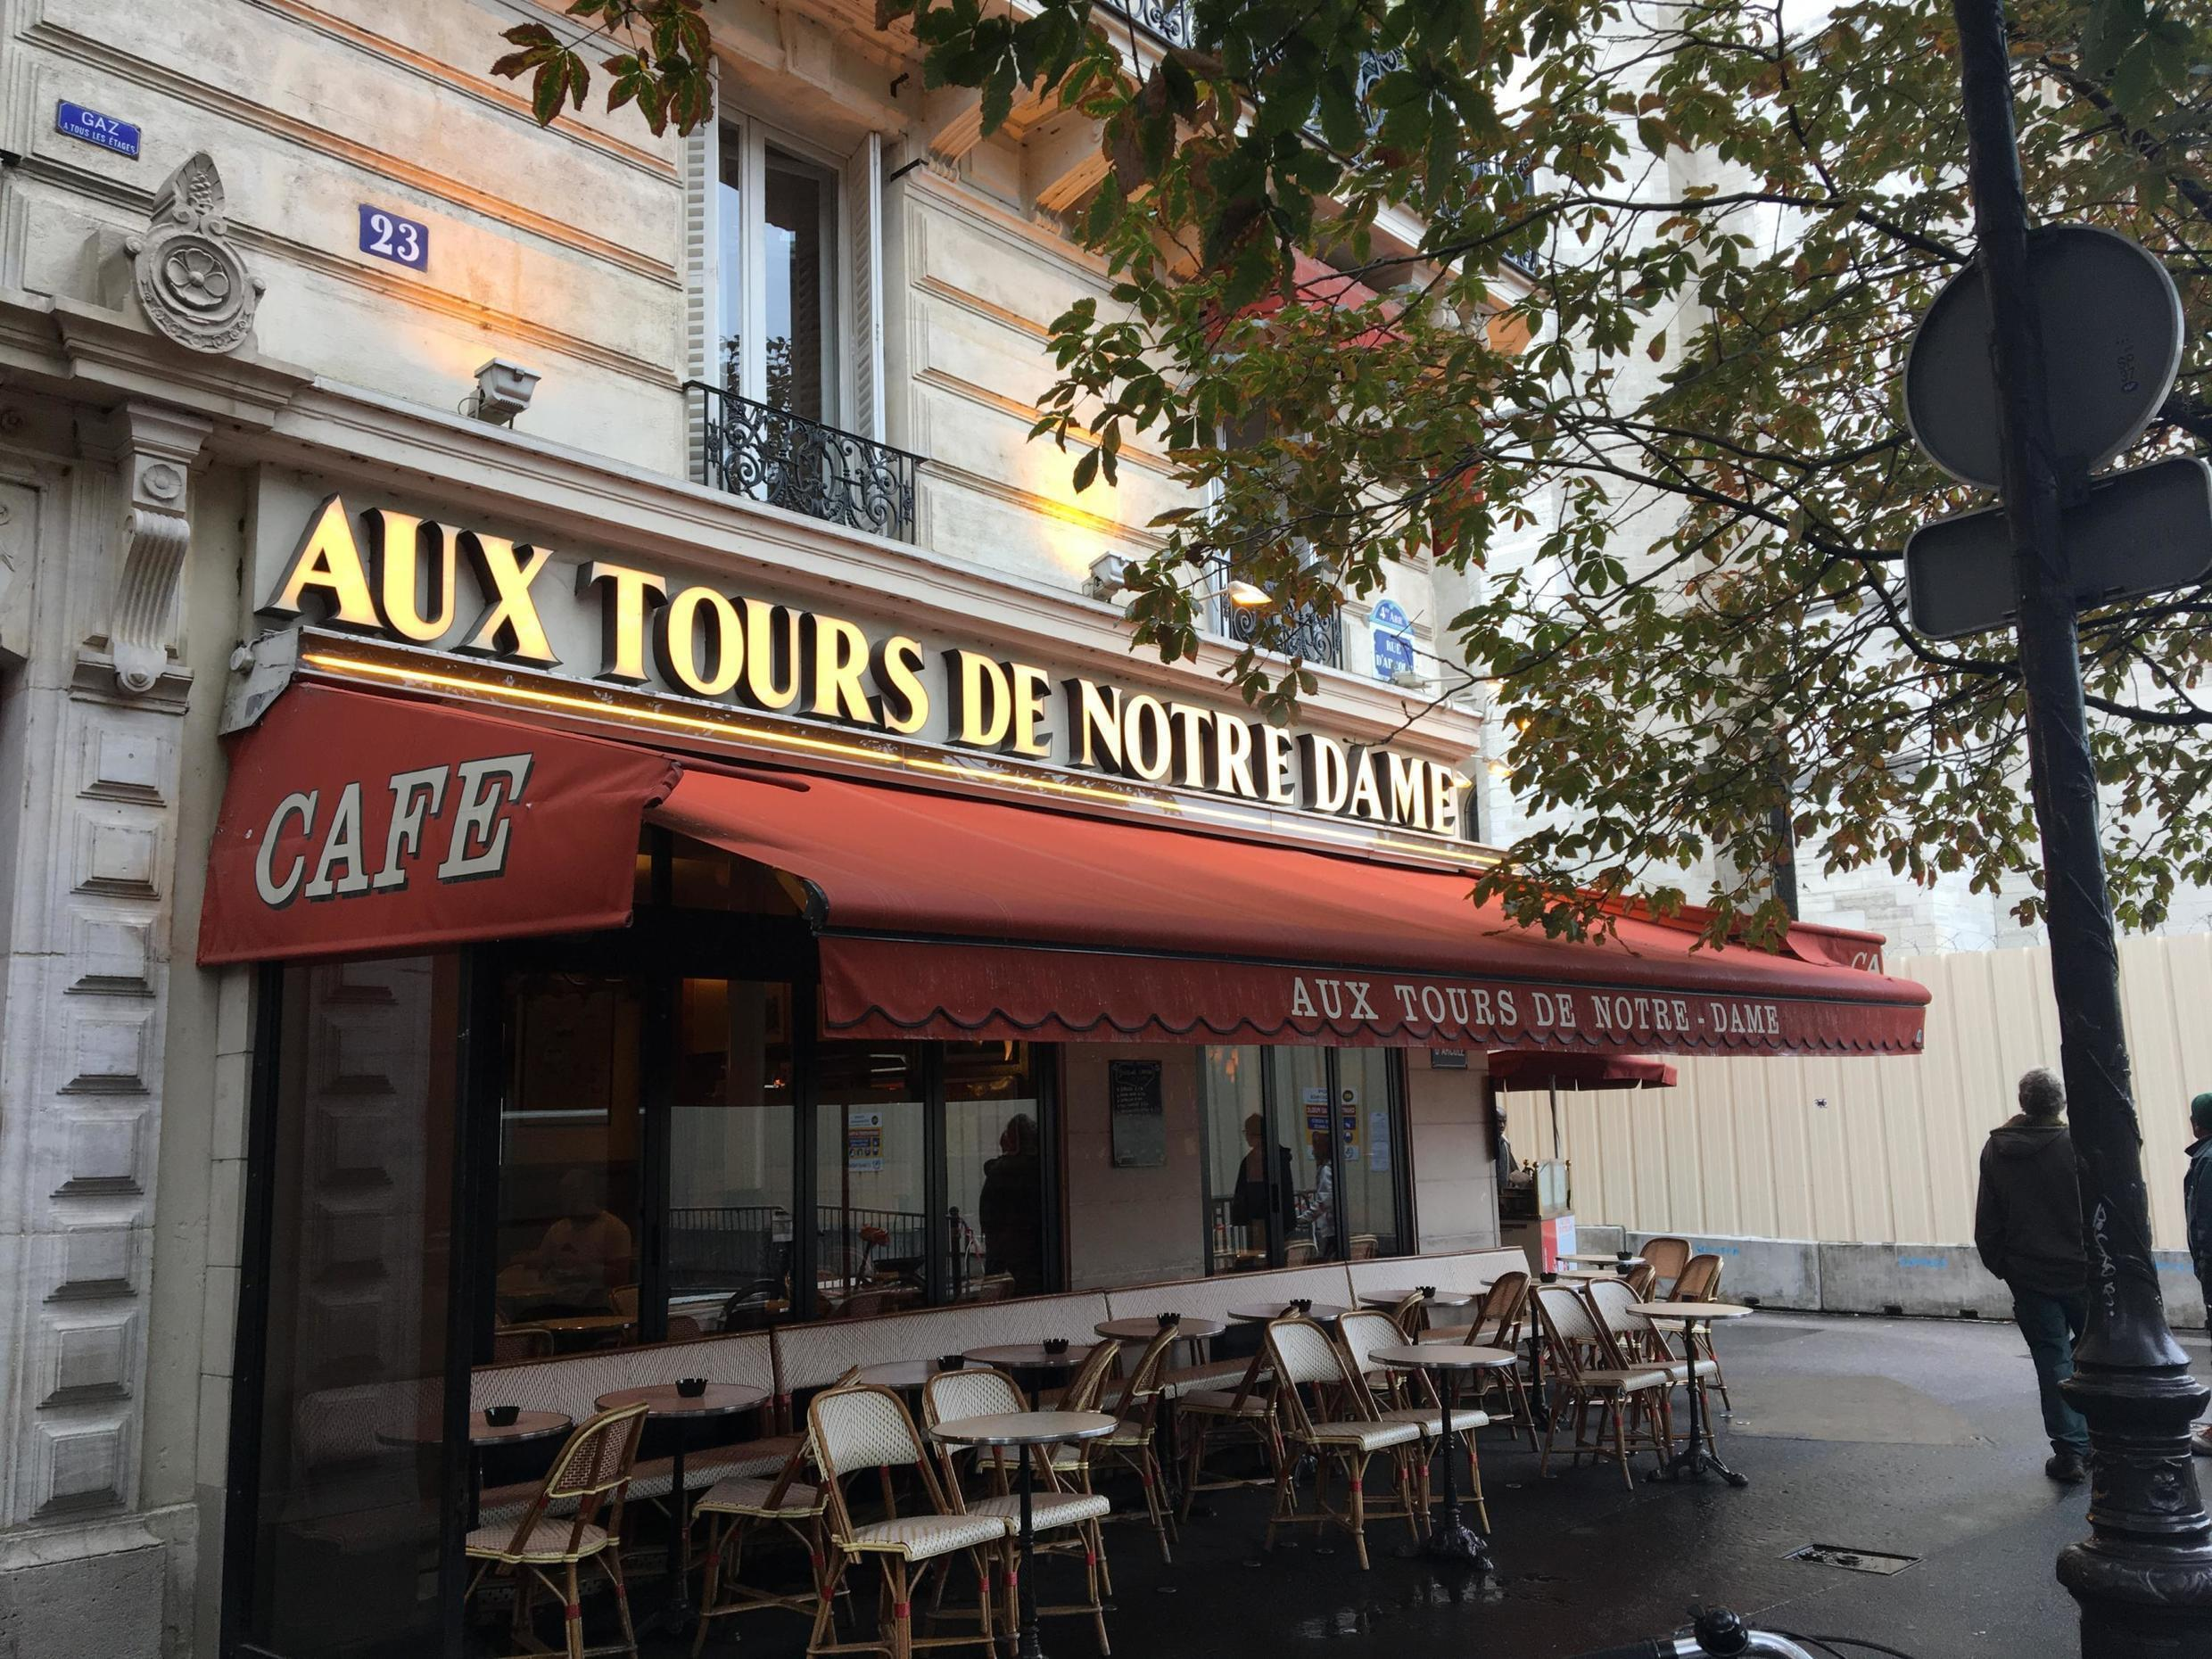 Cafés and souvenir shops around Notre Dame have lost between 40 and 90 percent of their turnover since the fire.